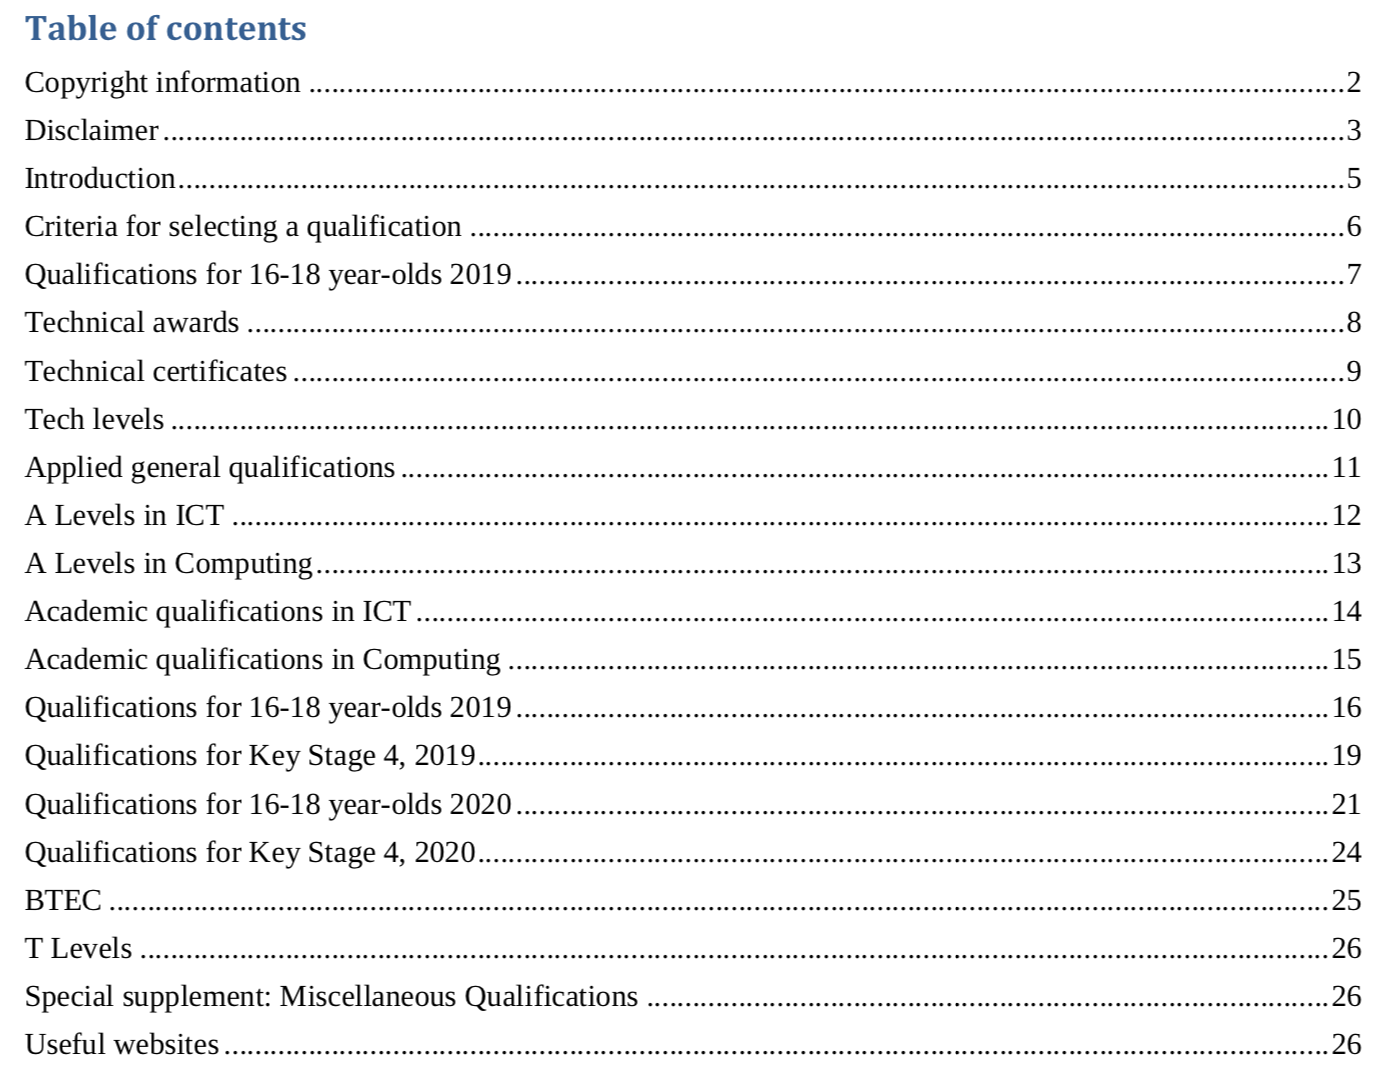 Table of Contents of Computing and Related Qualification, by Terry Freedman